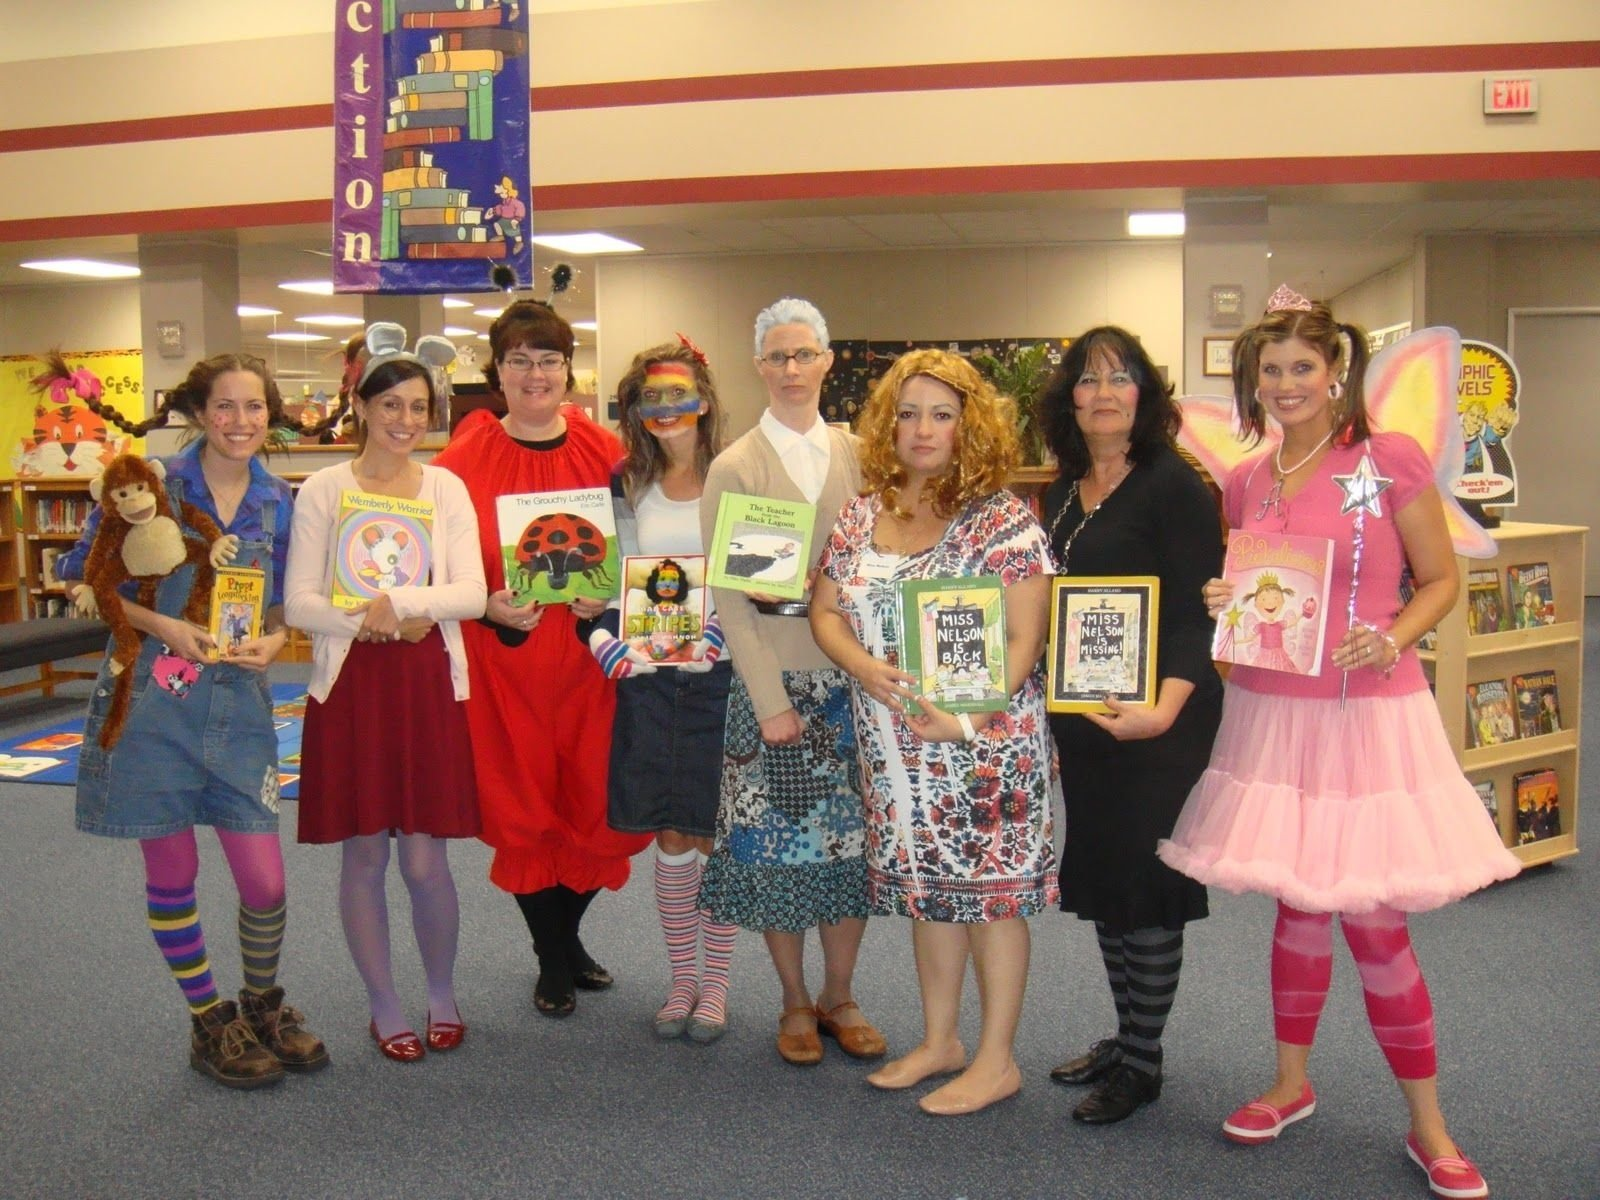 10 Stylish Book Character Dress Up Ideas book character dayperfect for halloween school stuff